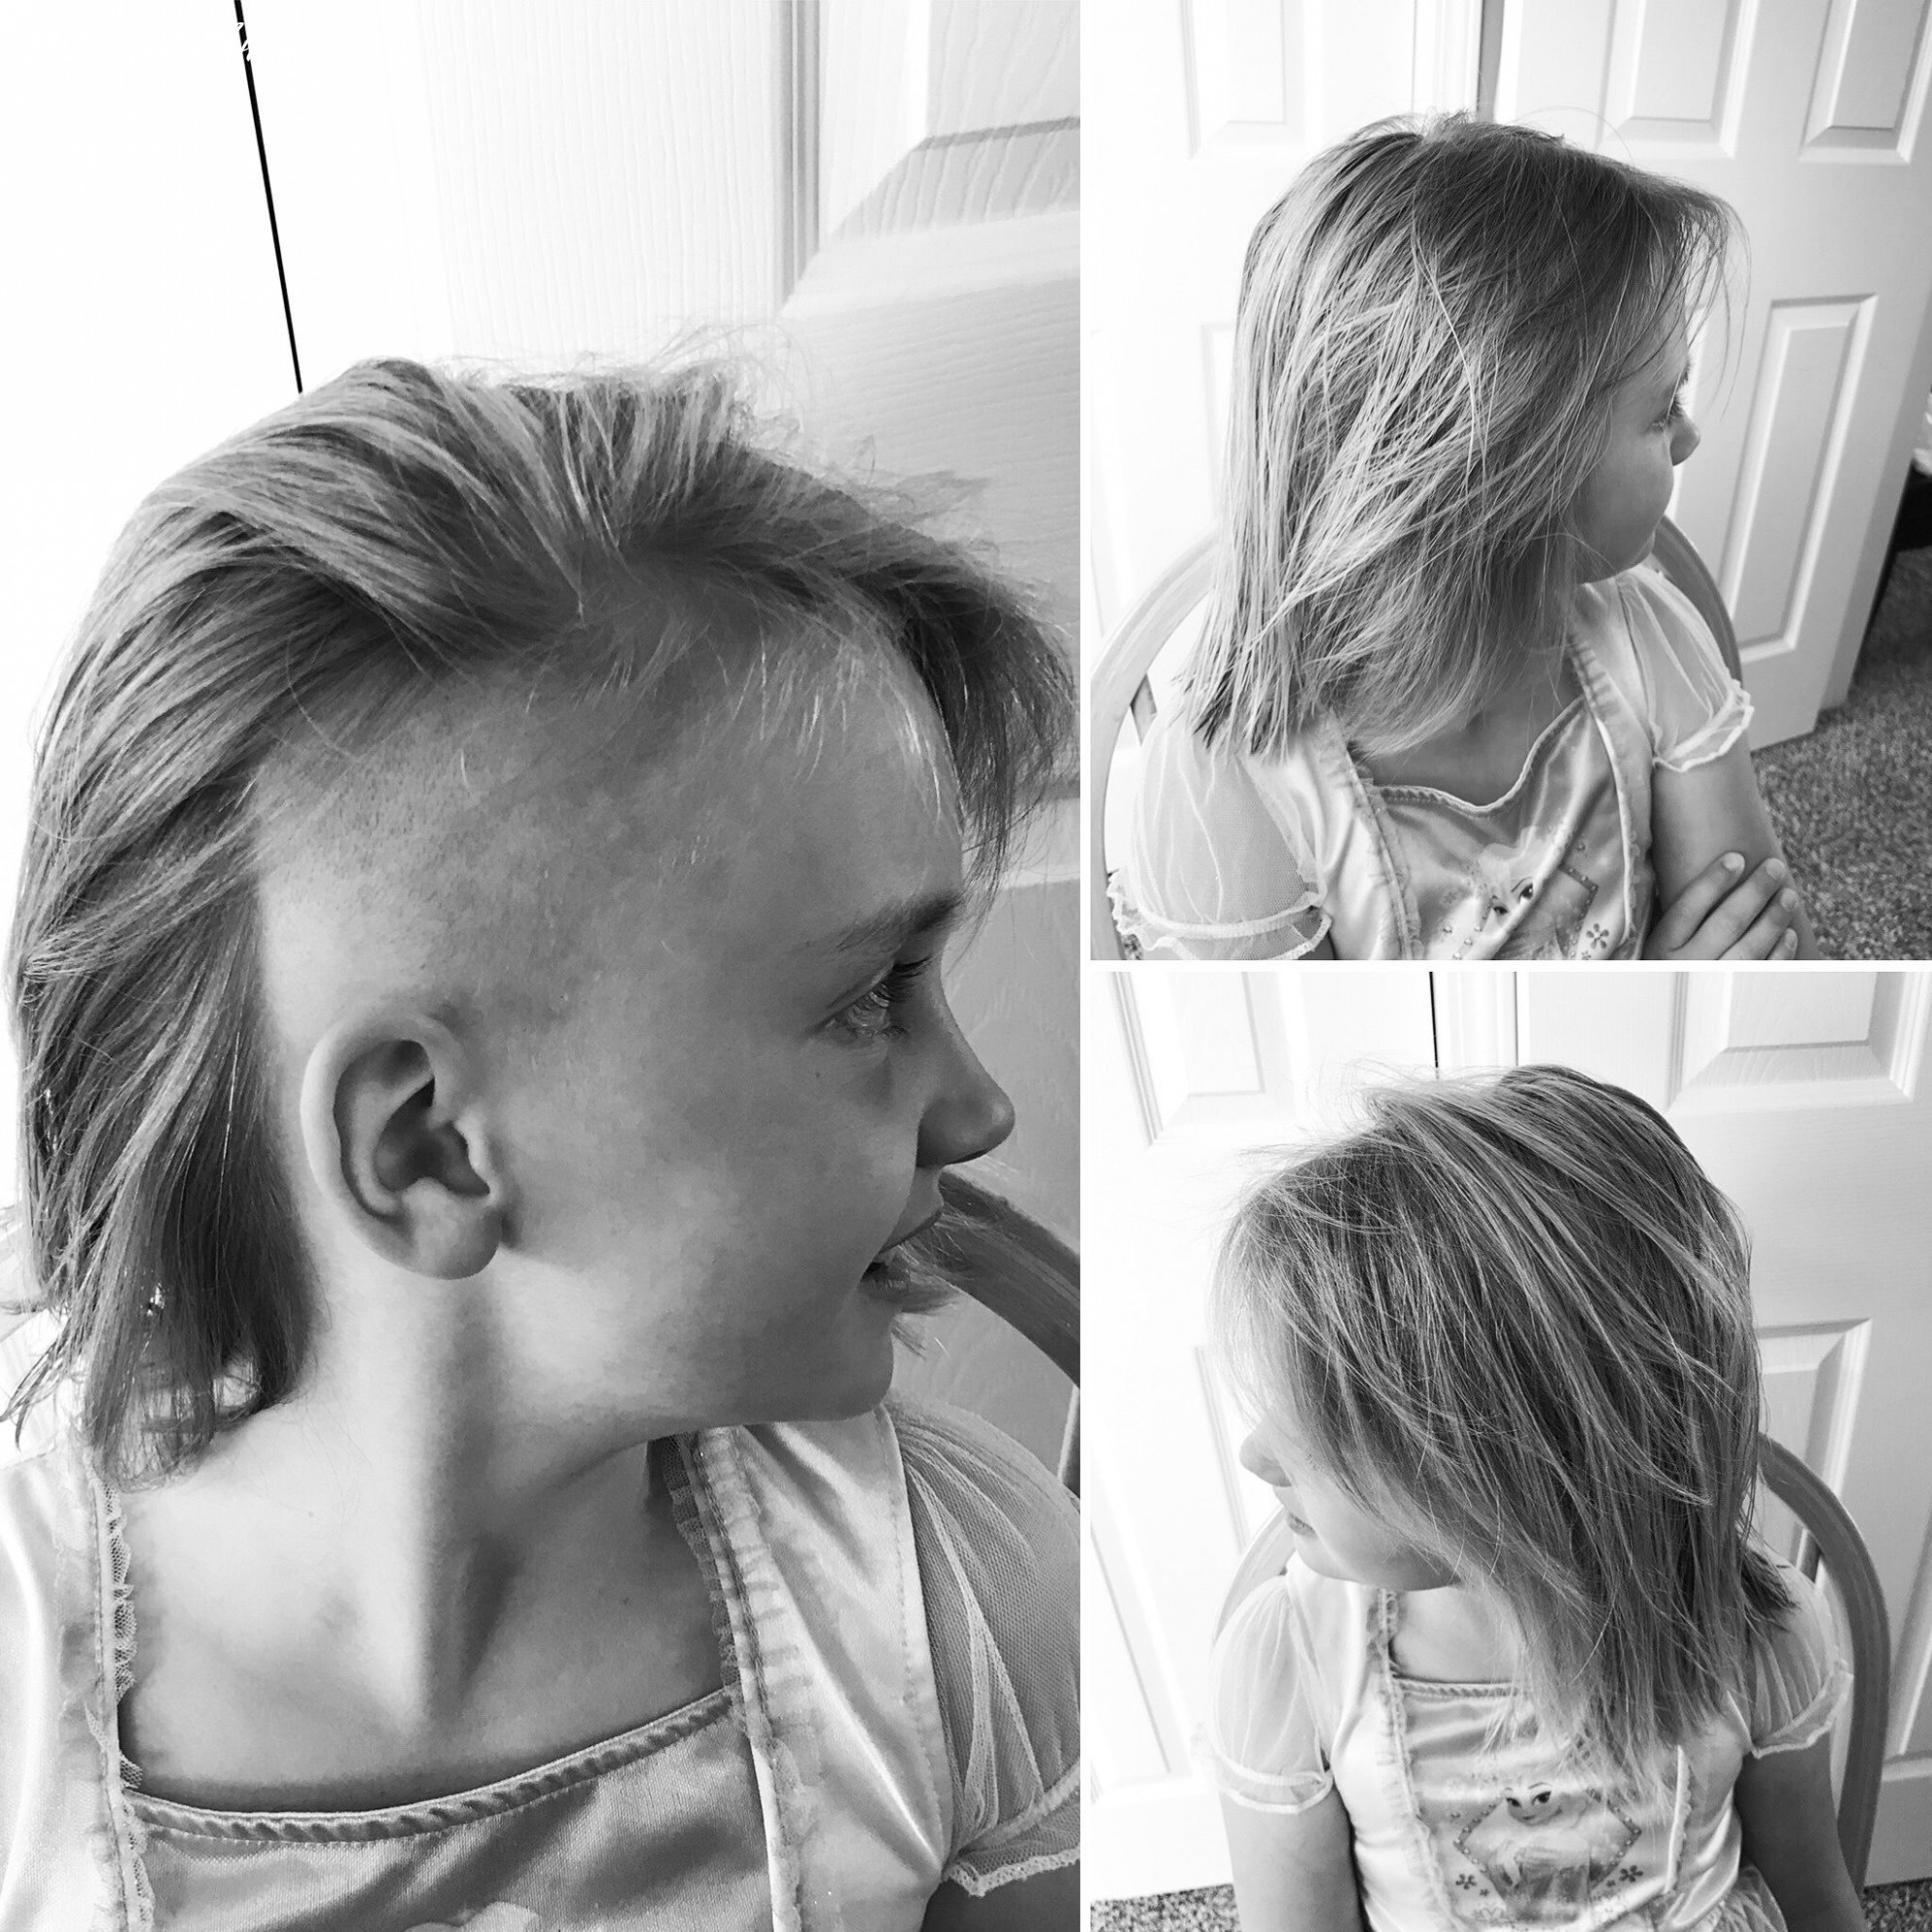 Undercut hair haircut girls hairstyle diy kitchen beautician